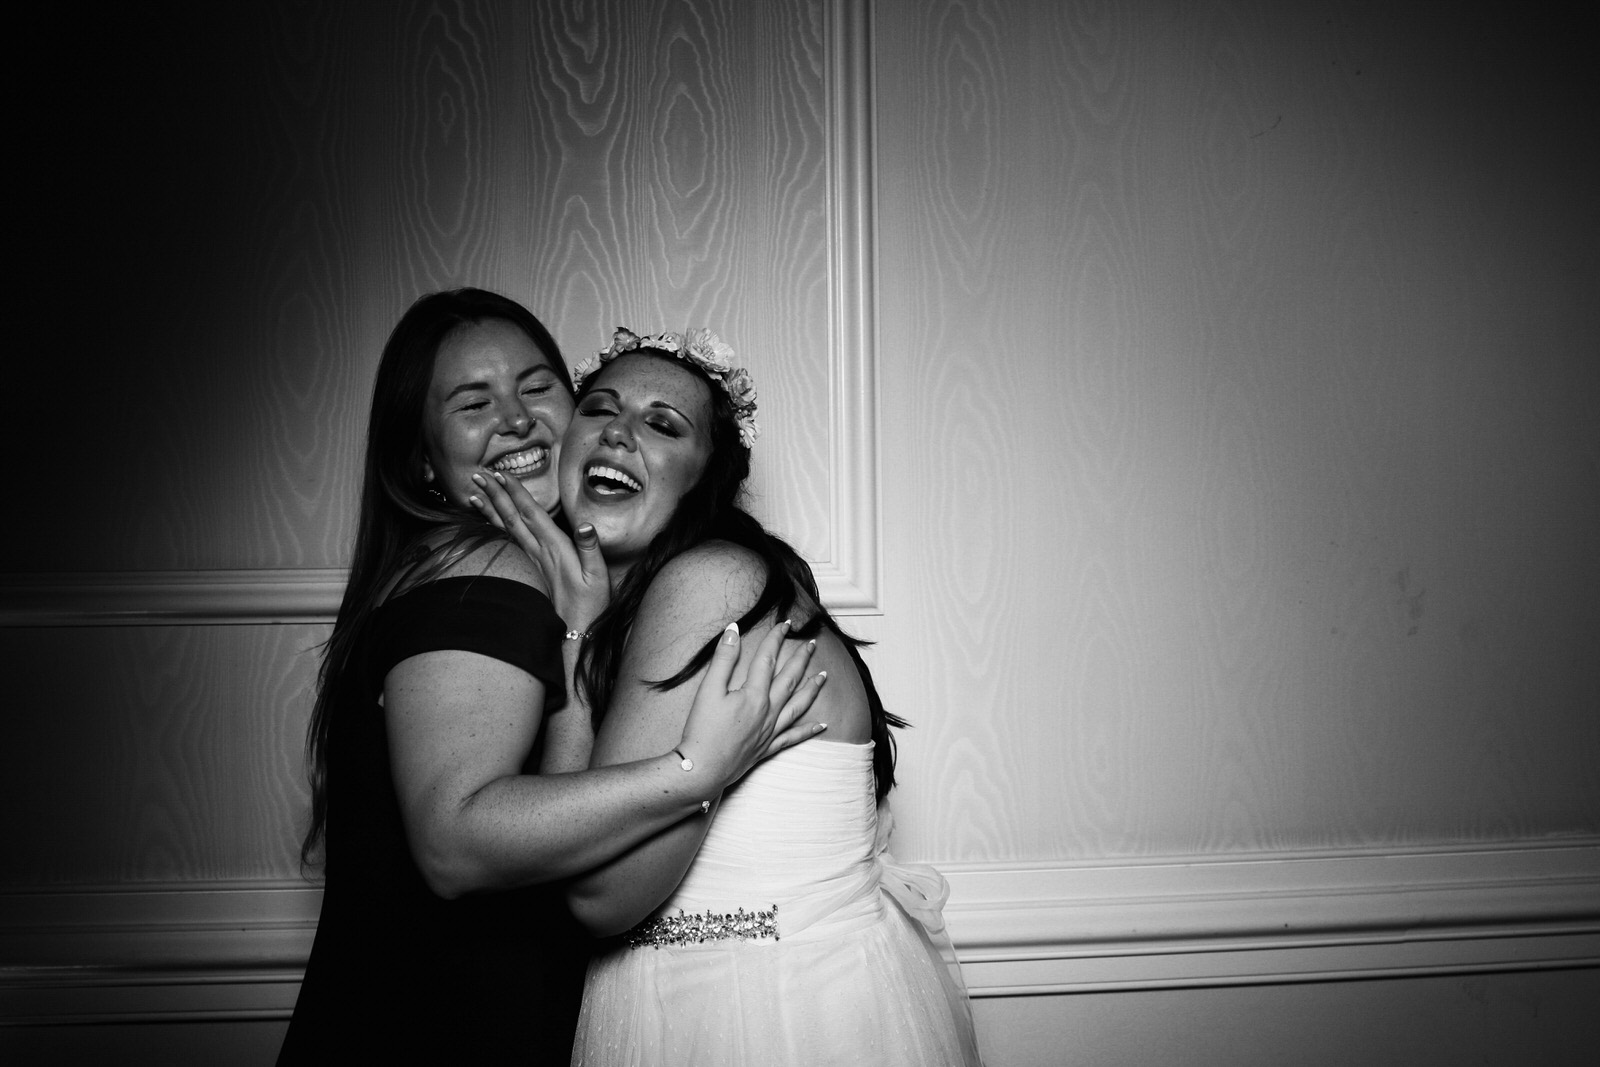 Ashley-Tyrone-Wedding-Photo-Booth-Presidential_Norristown-Wedding-32.jpg